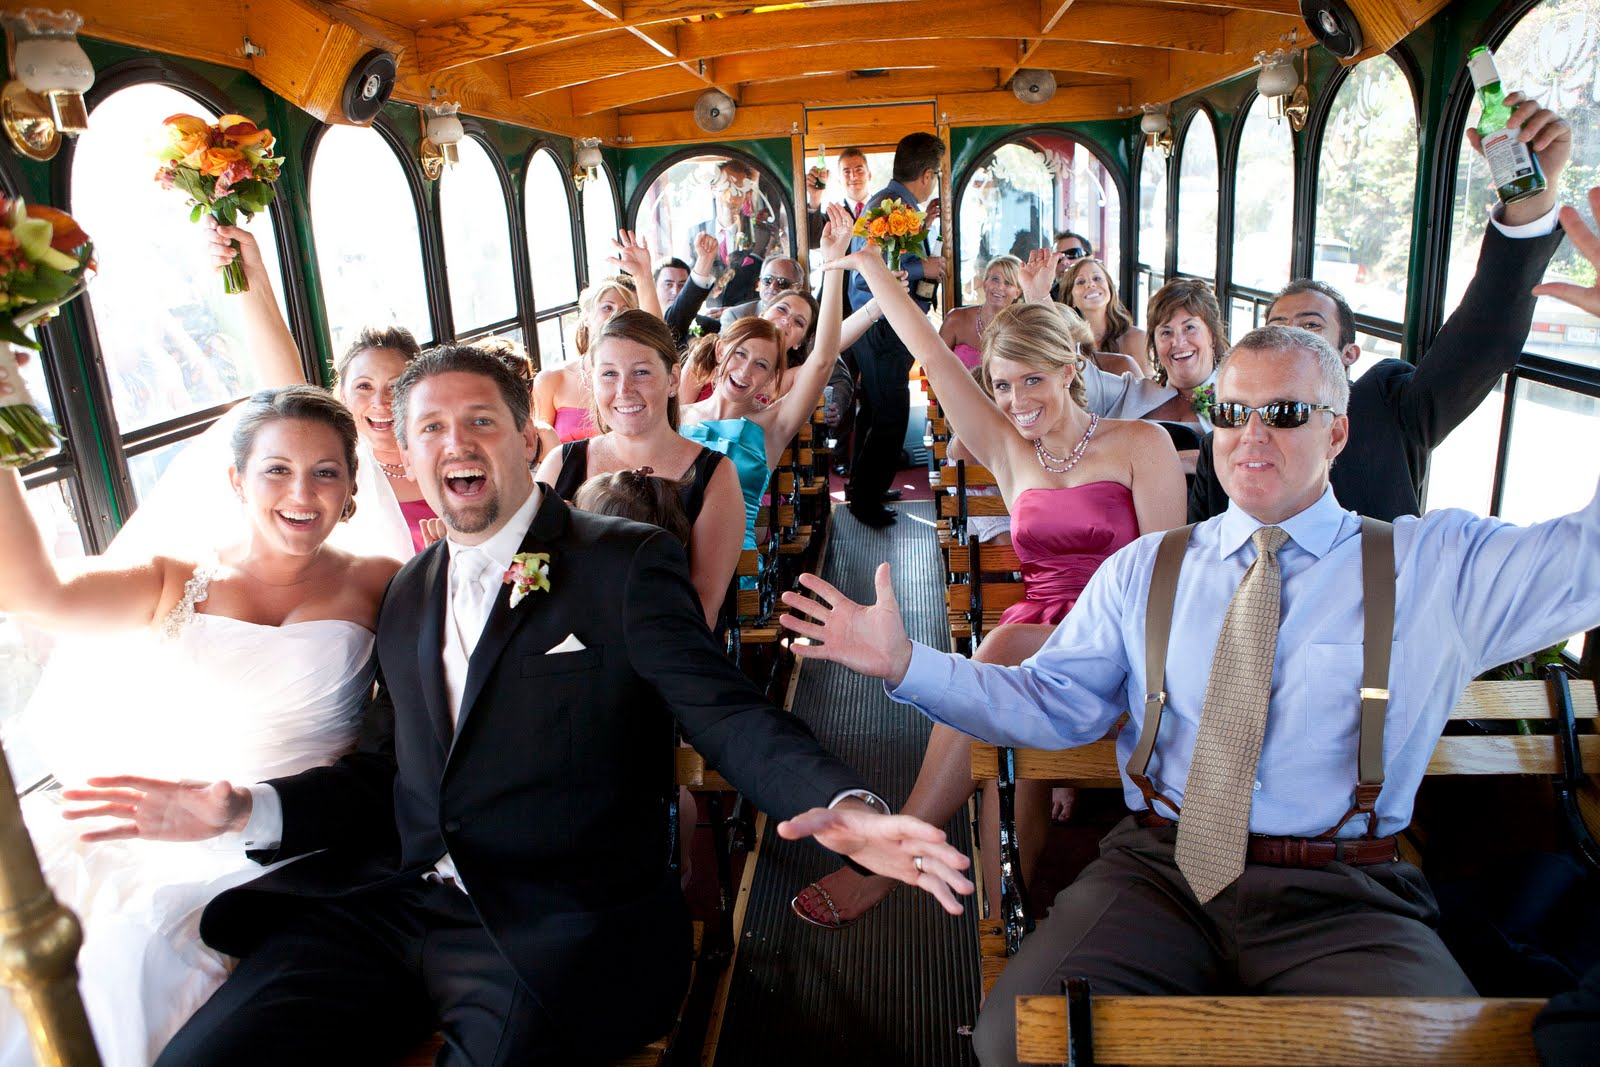 wedding party inside Victorian white trolley rental Philadelphia fun party bride groom dress suit glasses happy flowers